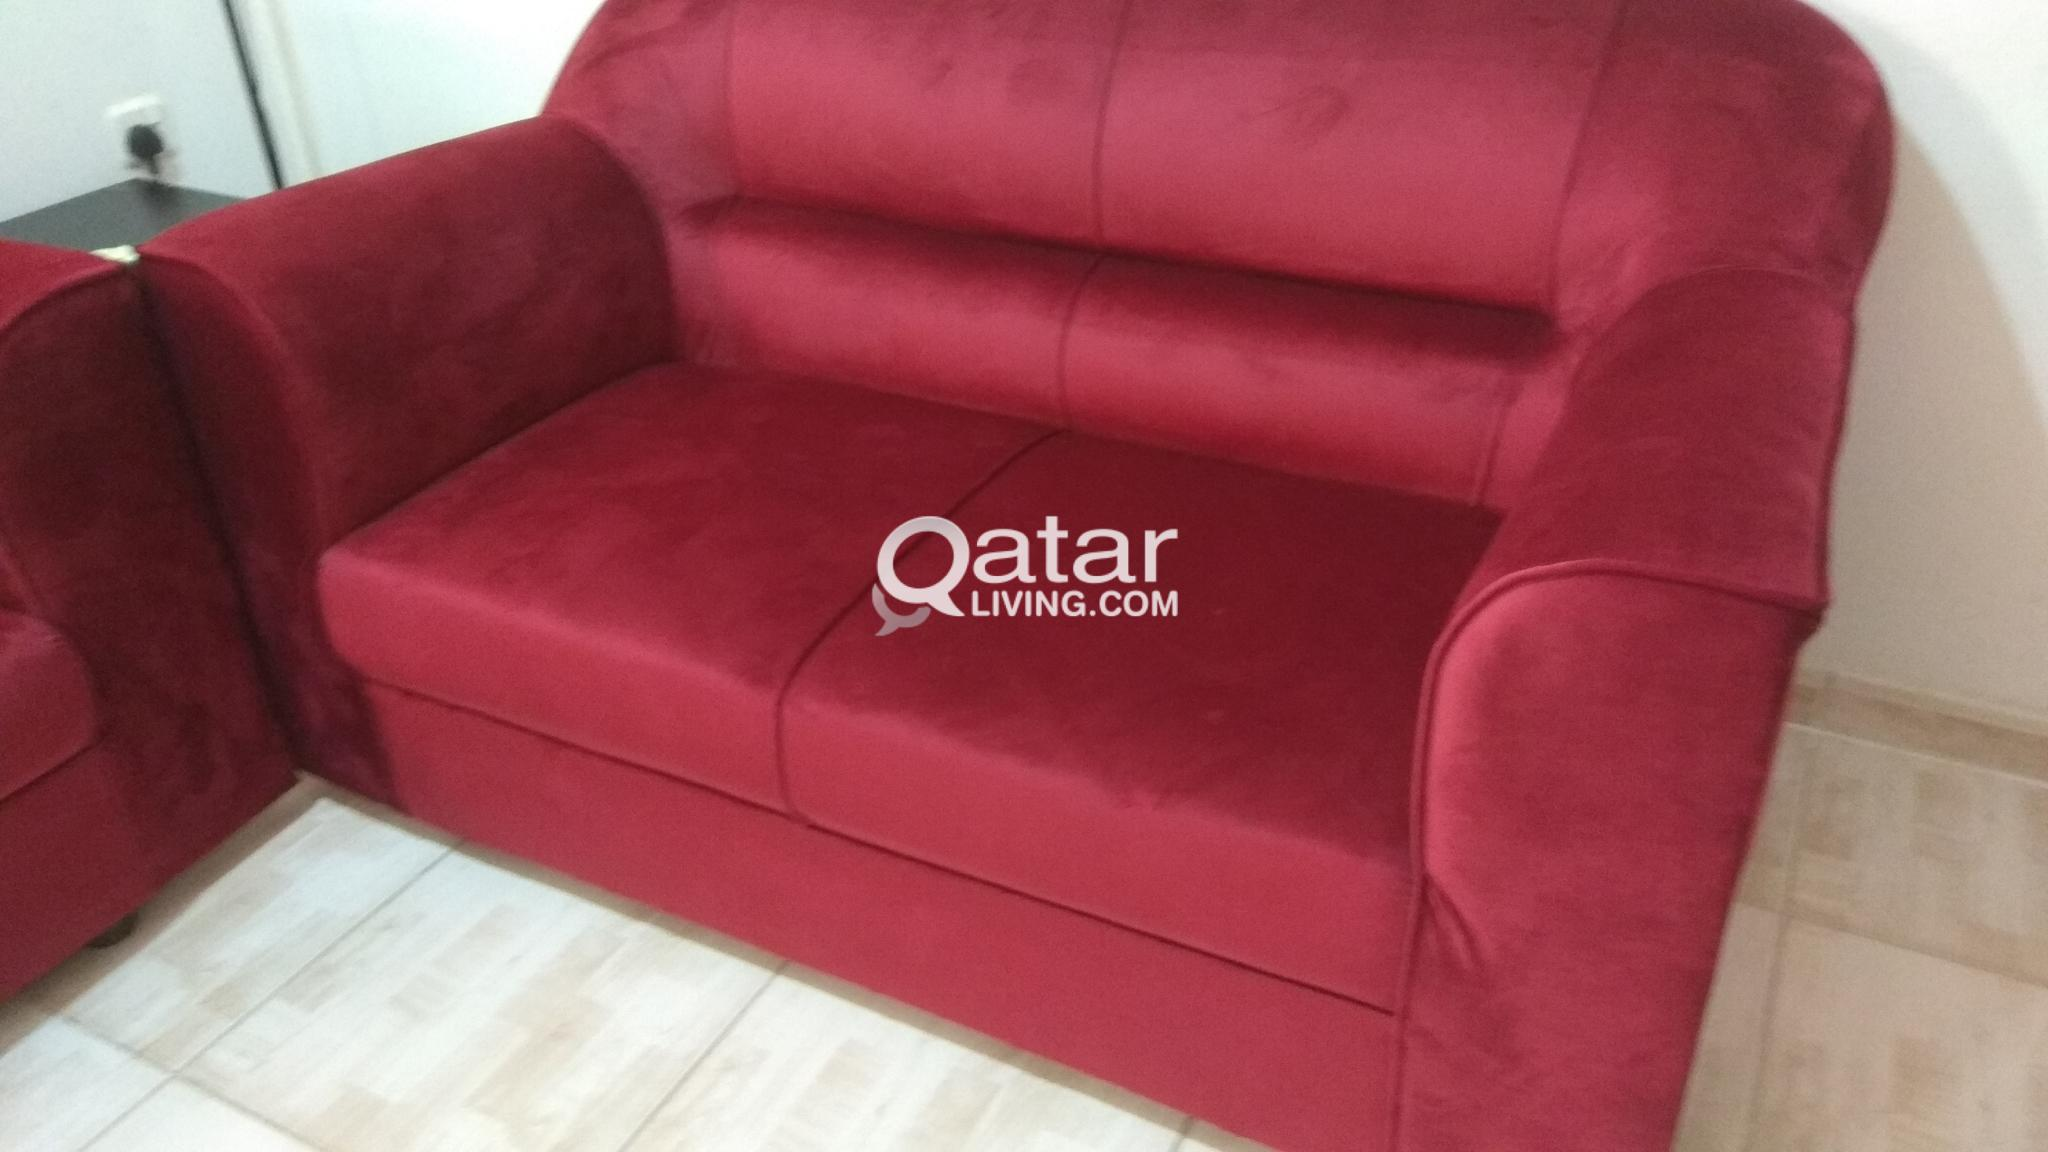 new sofa for sale pet covers australia urgent qatar living title information